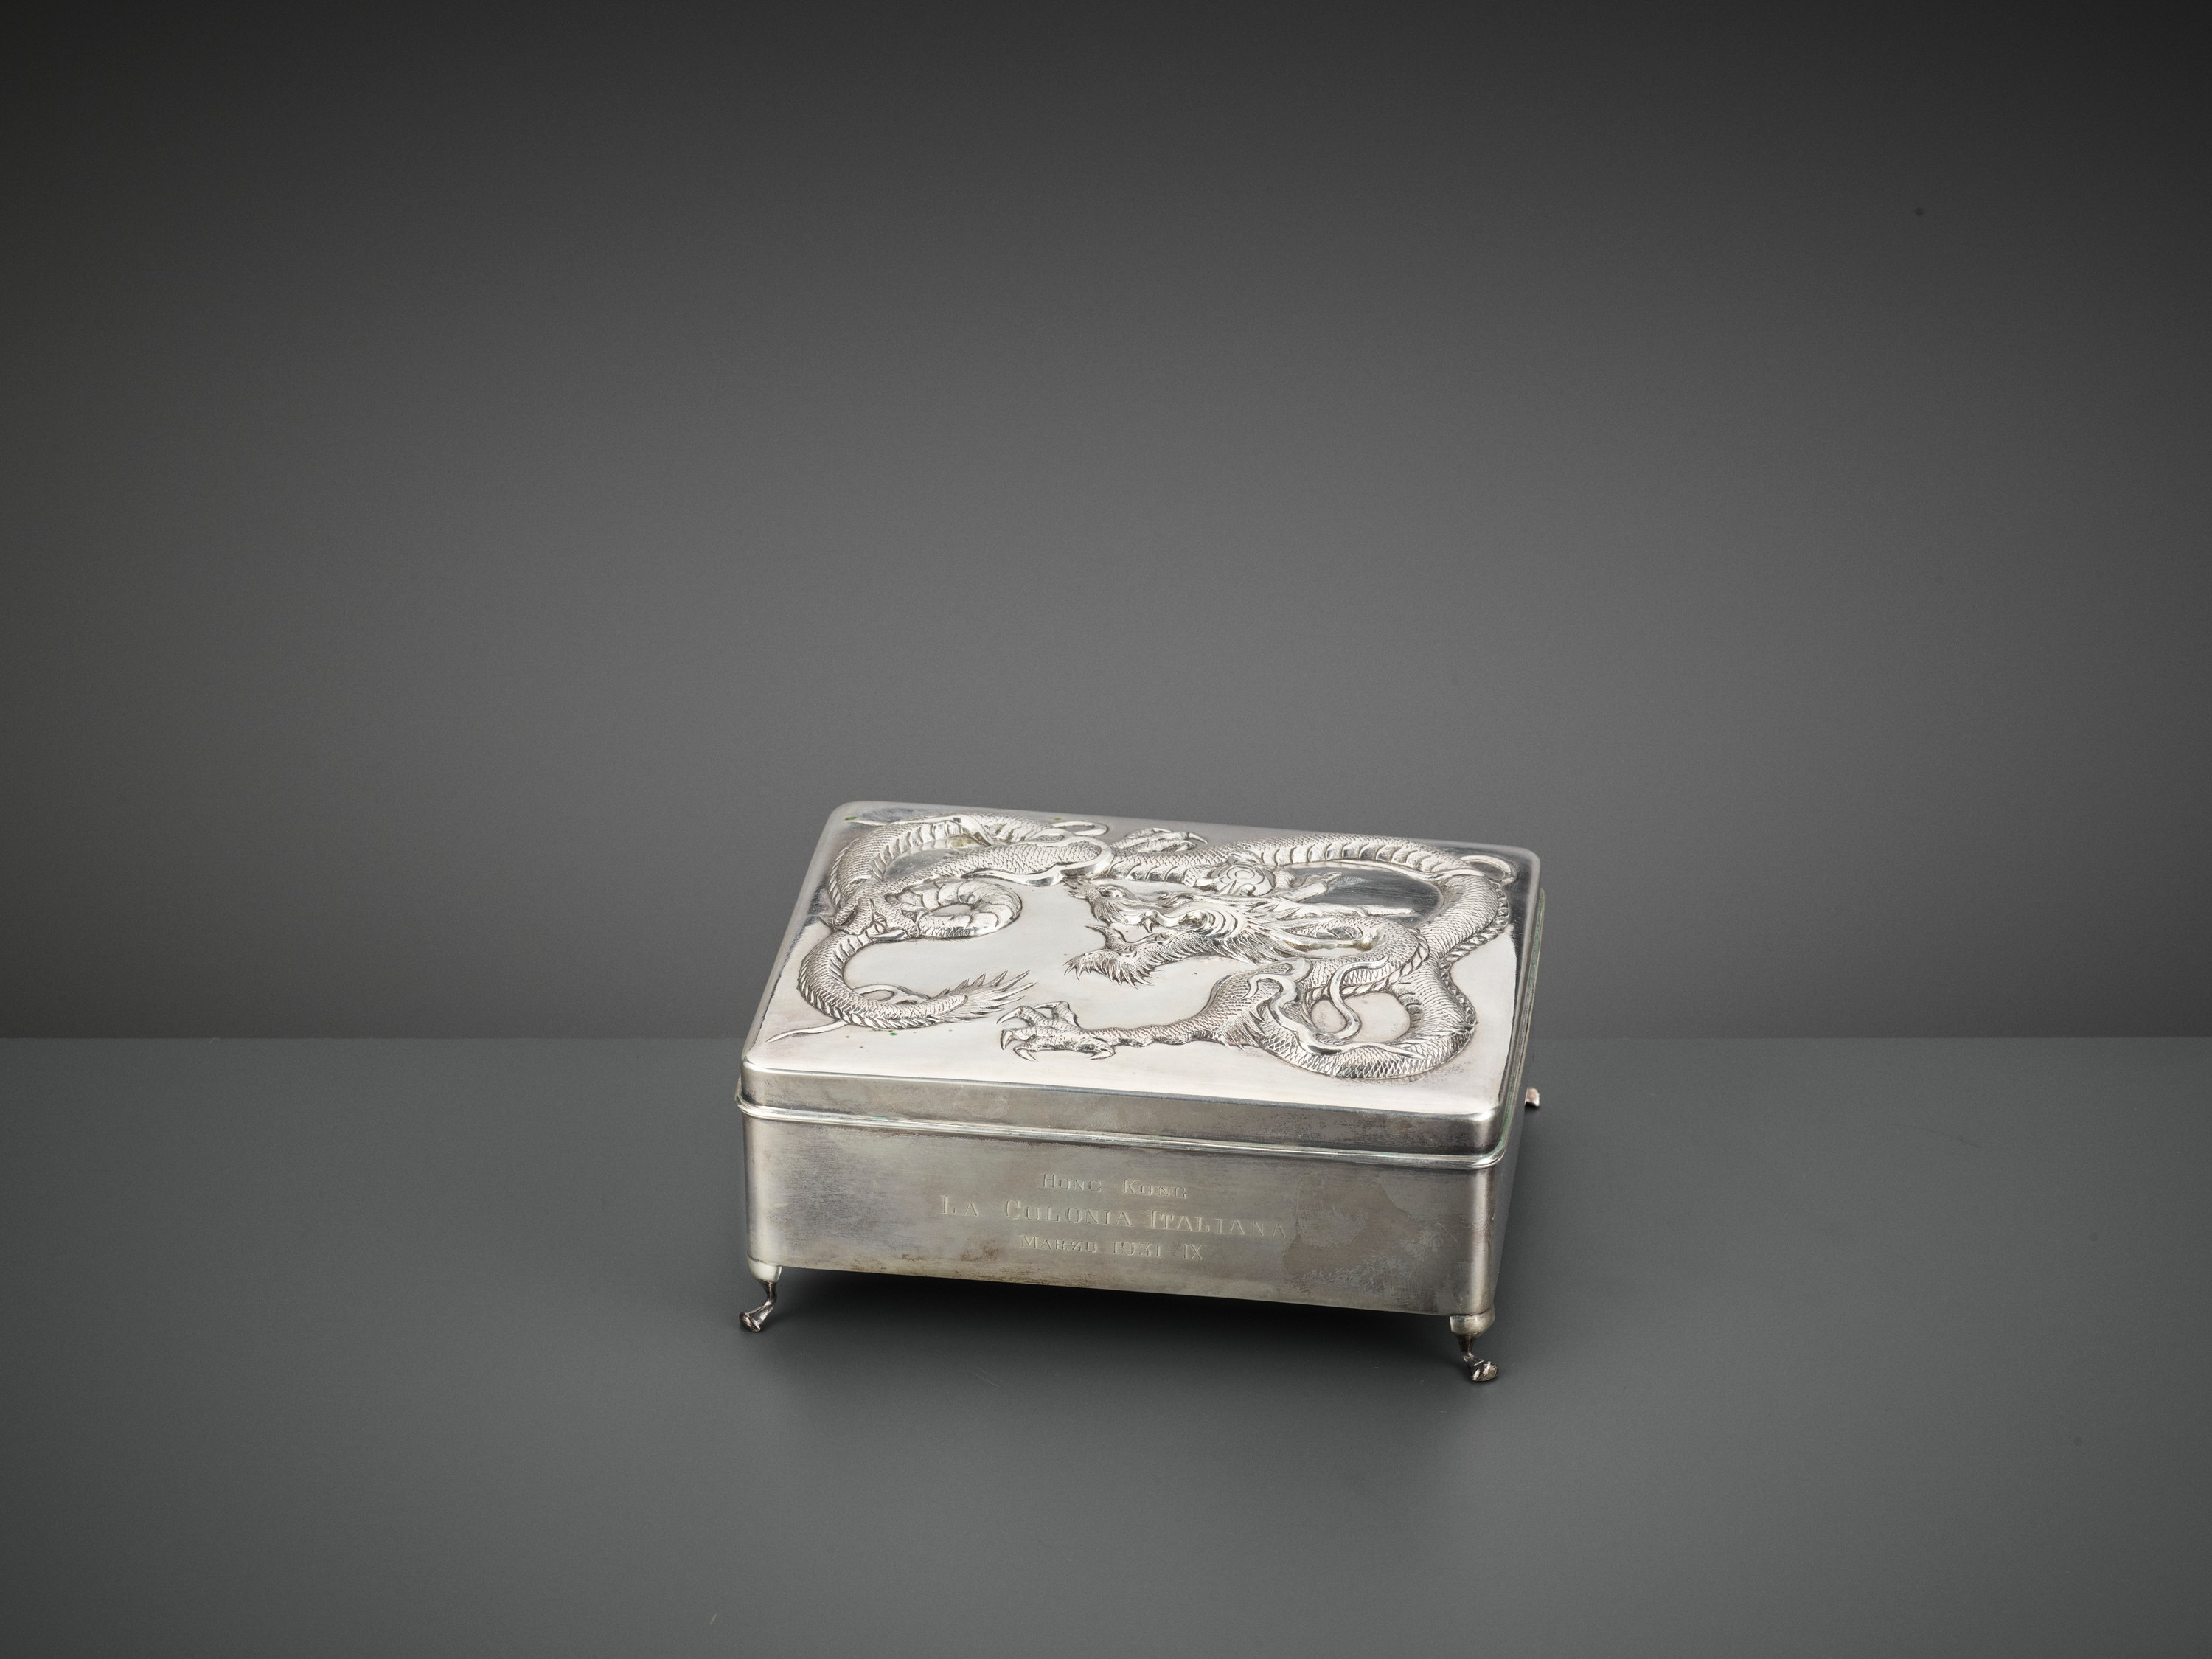 A SILVER REPOUSSE 'DRAGON' BOX AND COVER, WANG HING, LATE QING TO REPUBLIC - Image 2 of 10